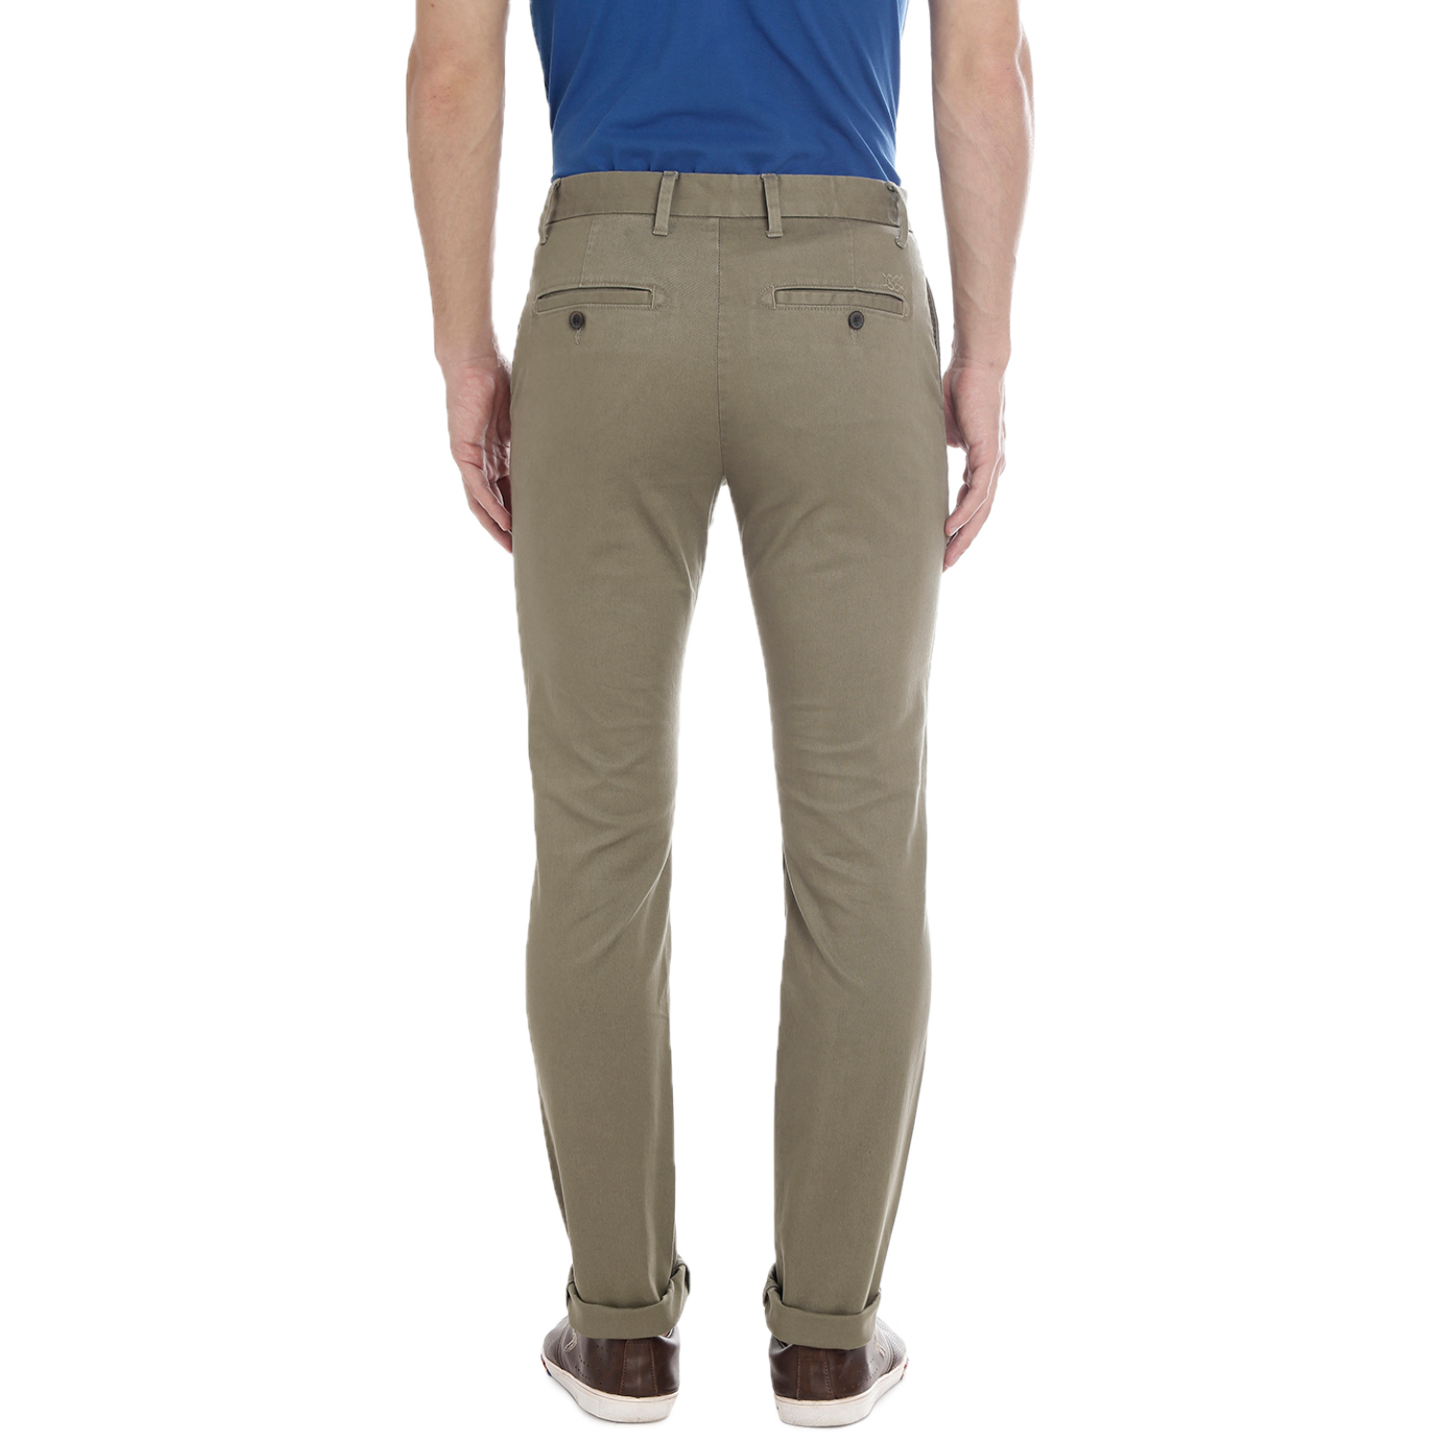 Bar Harbour Light Olive Color Slim Fit Casual Cotton Trousers for Men